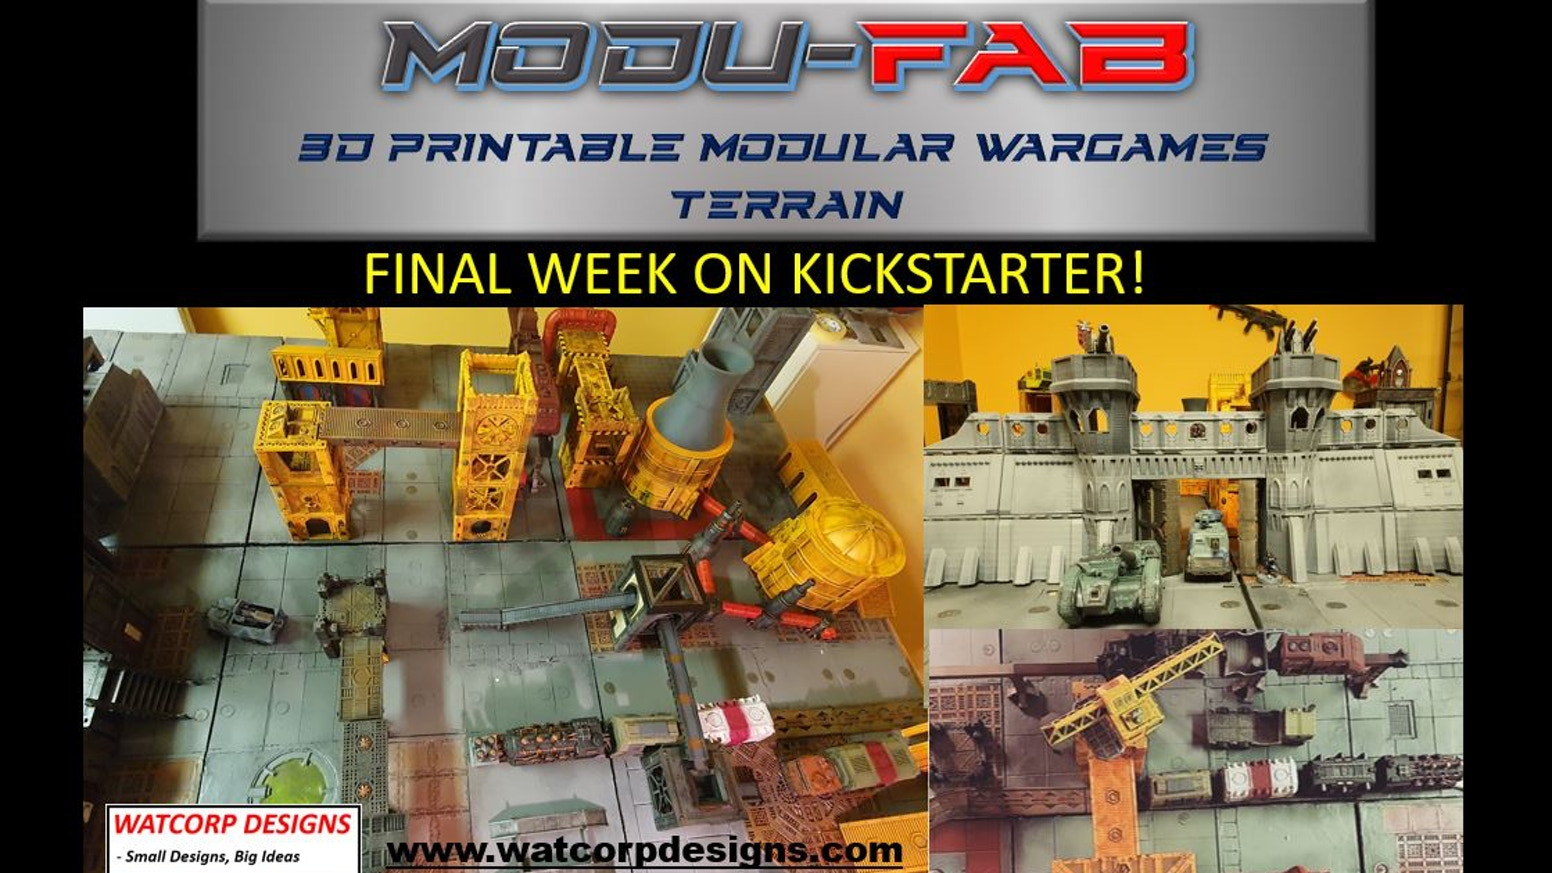 From the creators of Modutruck and Modurail